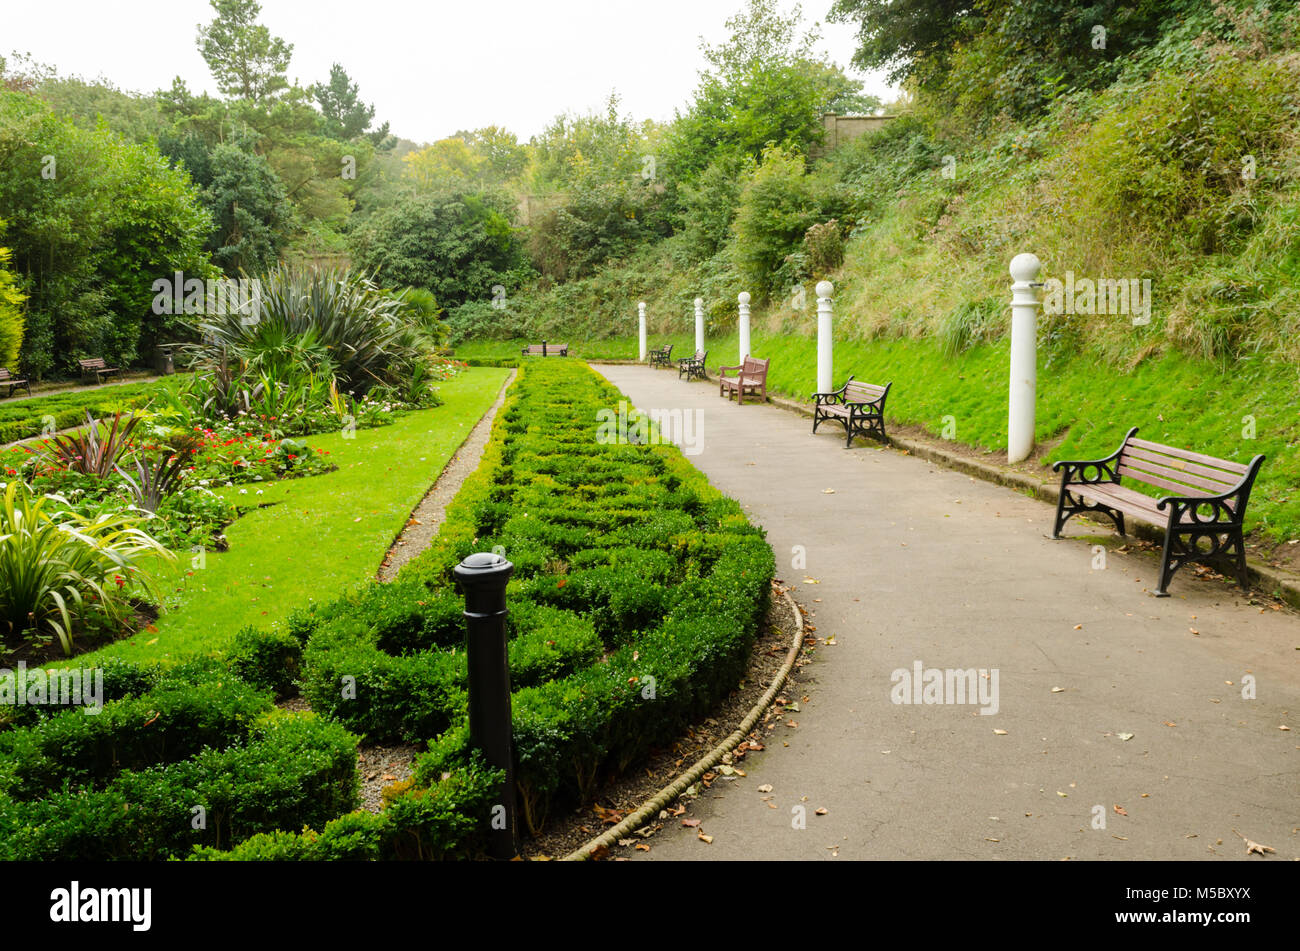 Saltburn Valley Gardens at Saltburn-by-the-Sea - Stock Image